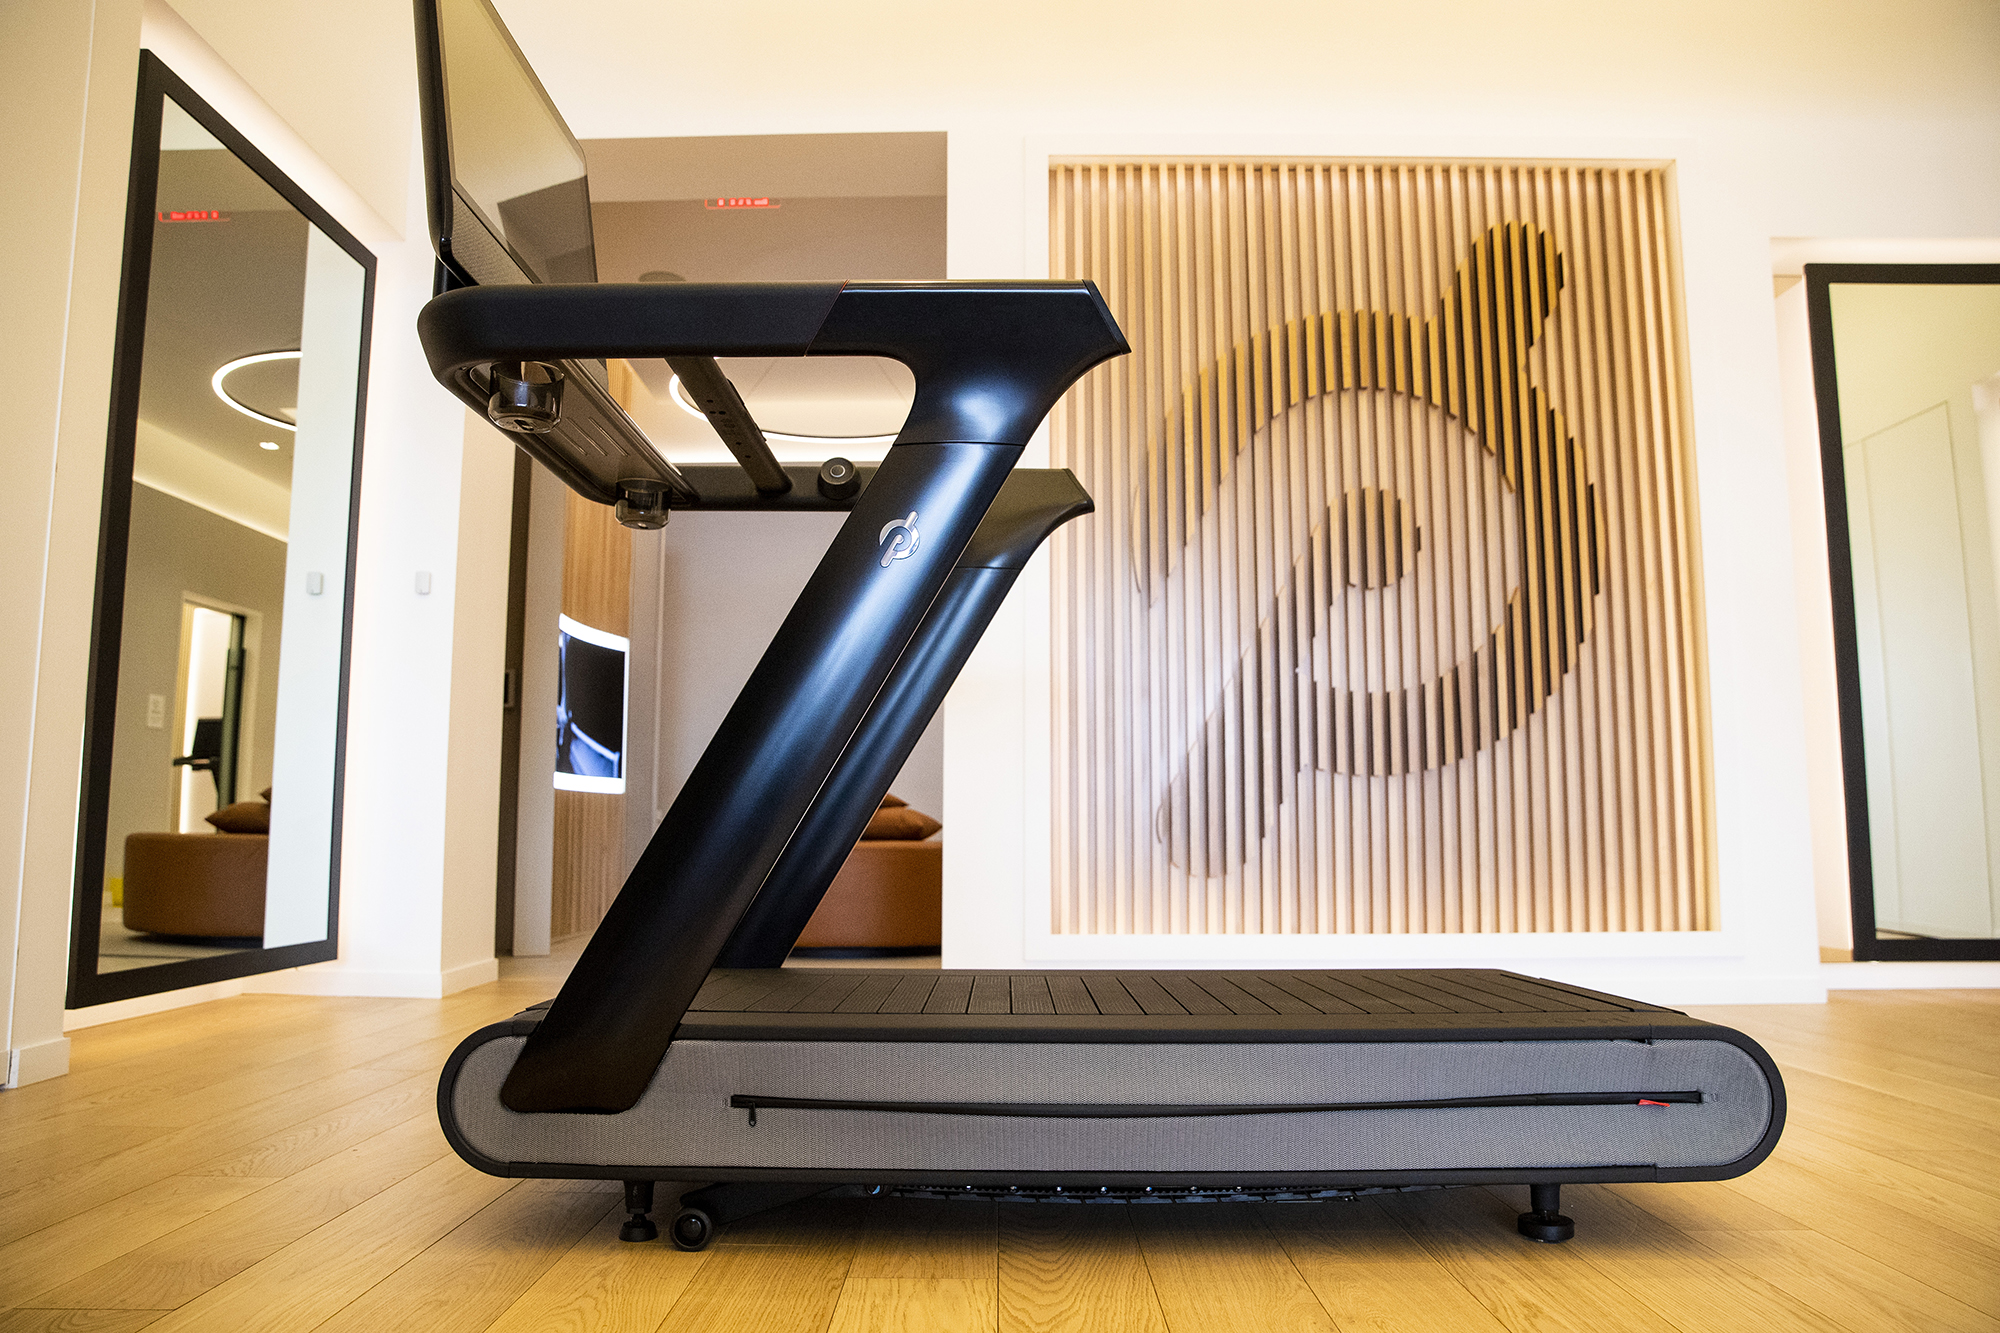 Peloton initially refused to recall its treadmills. Here's why it can do that